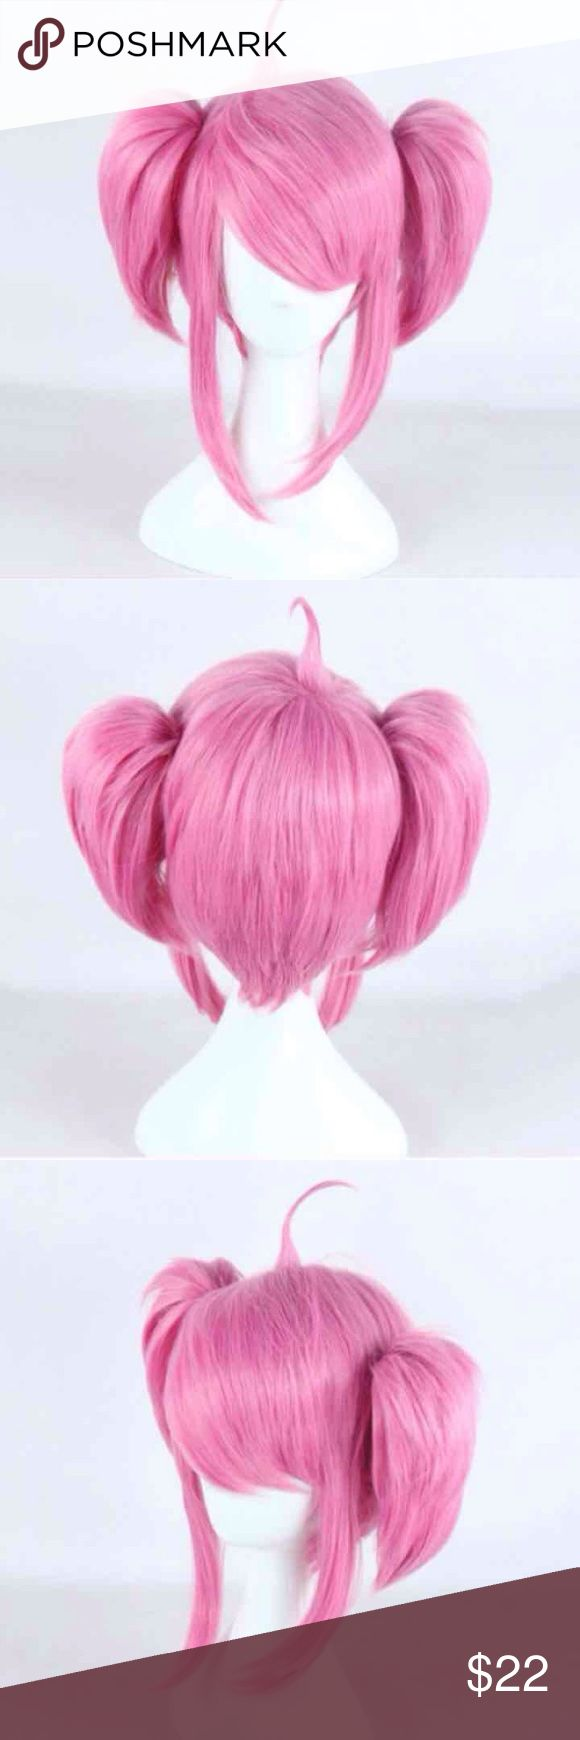 Star Guardian Lux Short Pink Cosplay Wig Short pink bob wig with two small clip-on ponytails. High quality synthetic fibers can be heat styled on the lowest setting. Wig is brand new never worn.  League of Legends Star Guardian Lux Cosplay Costume Halloween Pink Short Bob wig clip on ponytails Accessories Hair Accessories